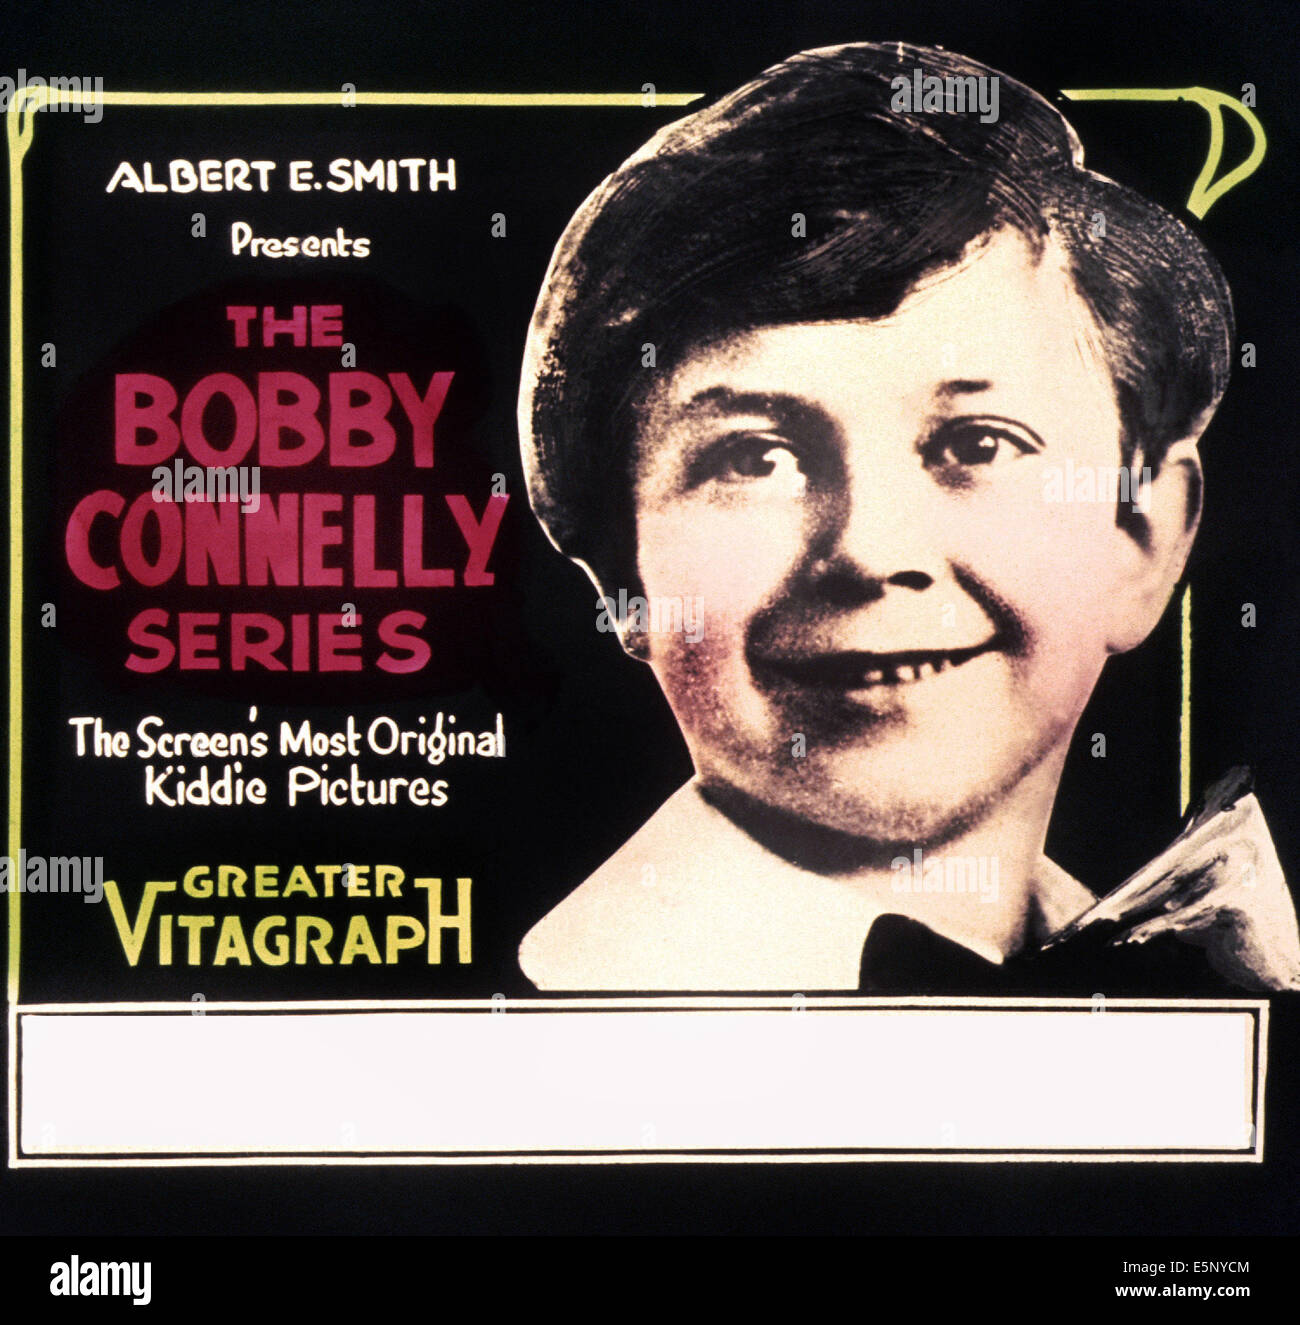 Poster art for Bobby Connelly series of short films, 1910s - Stock Image